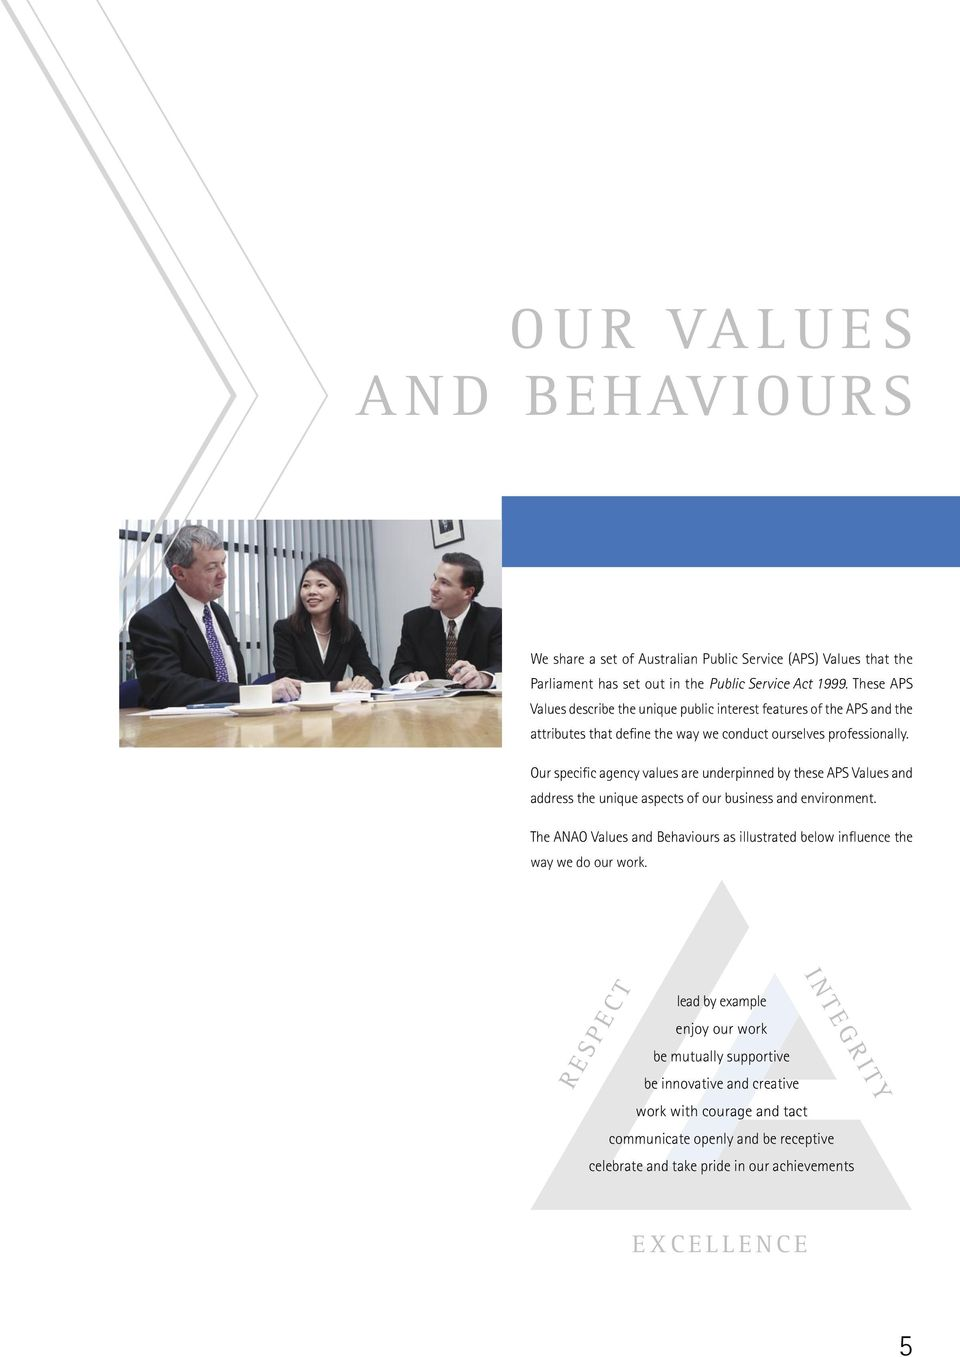 Our specific agency values are underpinned by these APS Values and address the unique aspects of our business and environment.